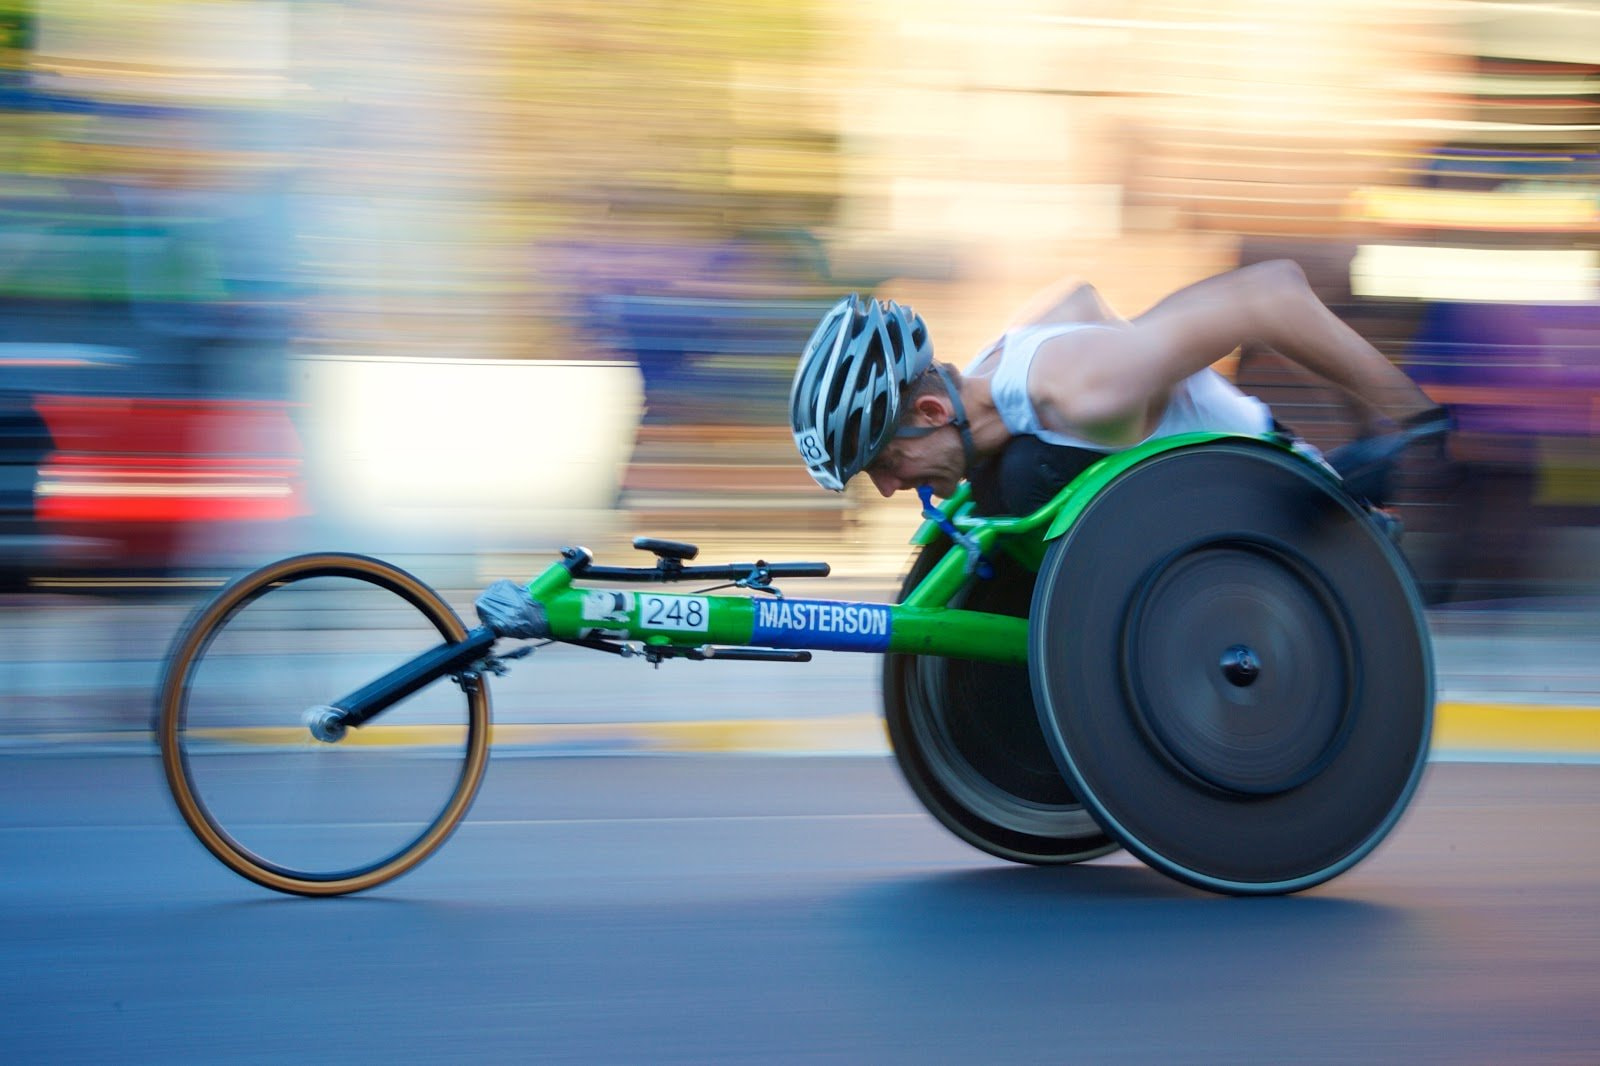 Motion blur photo of a disabled cyclist by Seth Kane